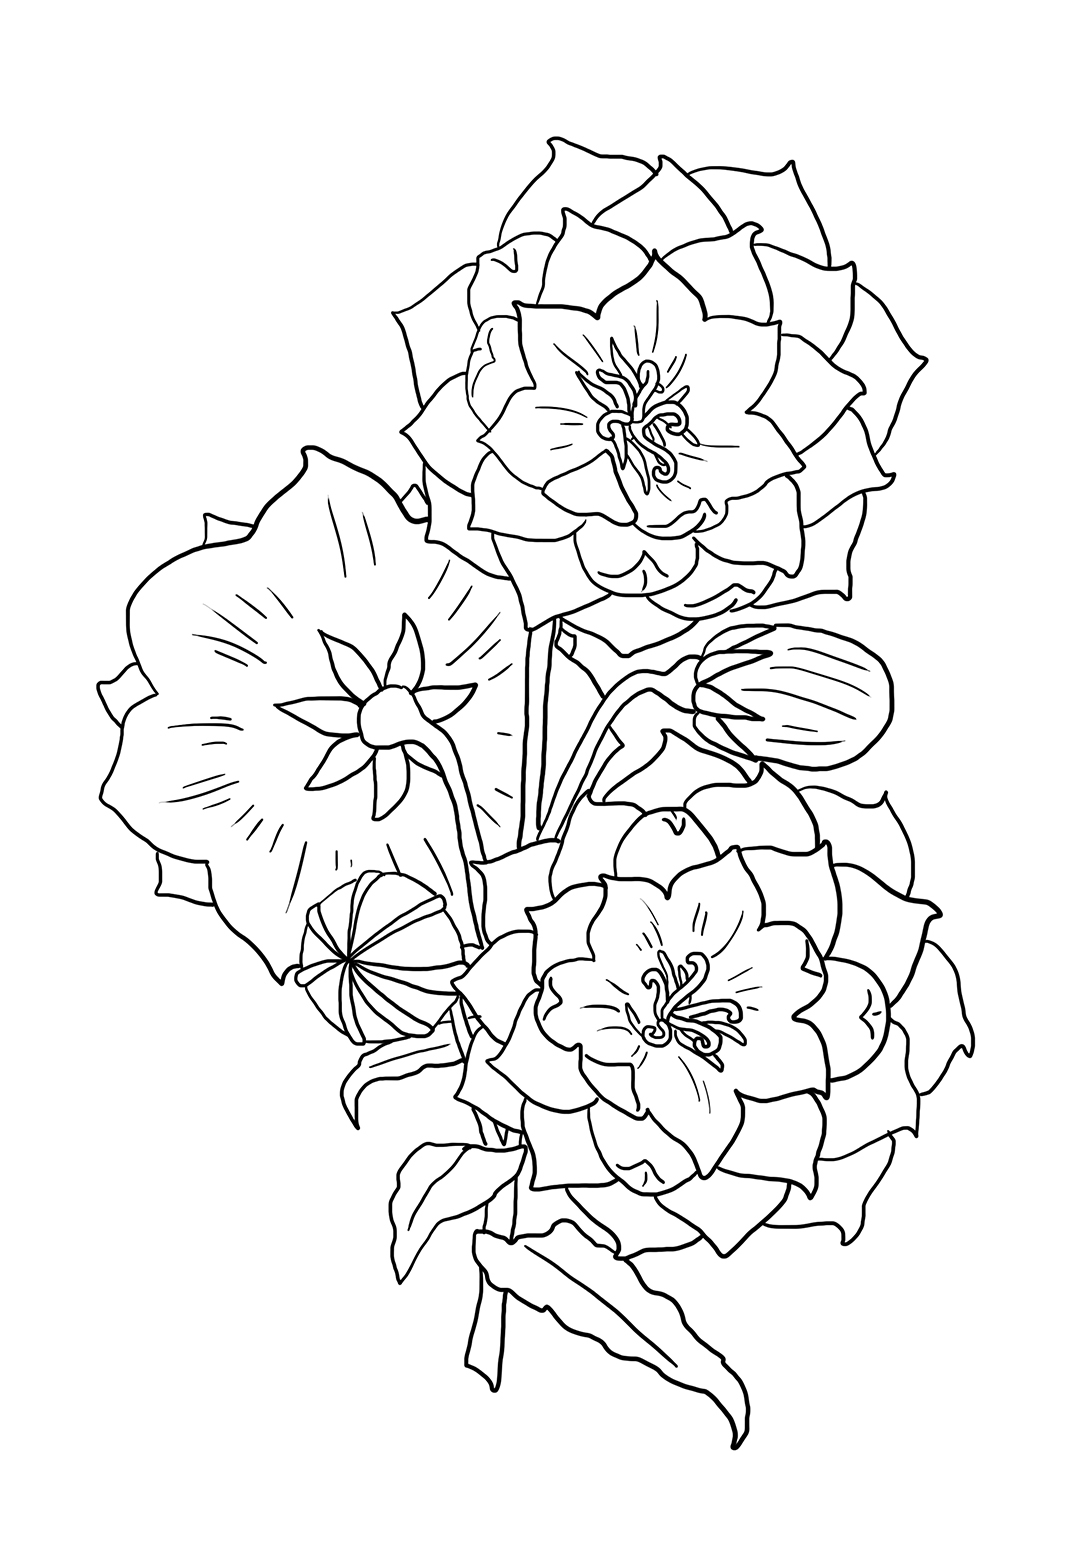 flower doodle coloring pages free printable floral coloring page ausmalbild freebie coloring flower pages doodle